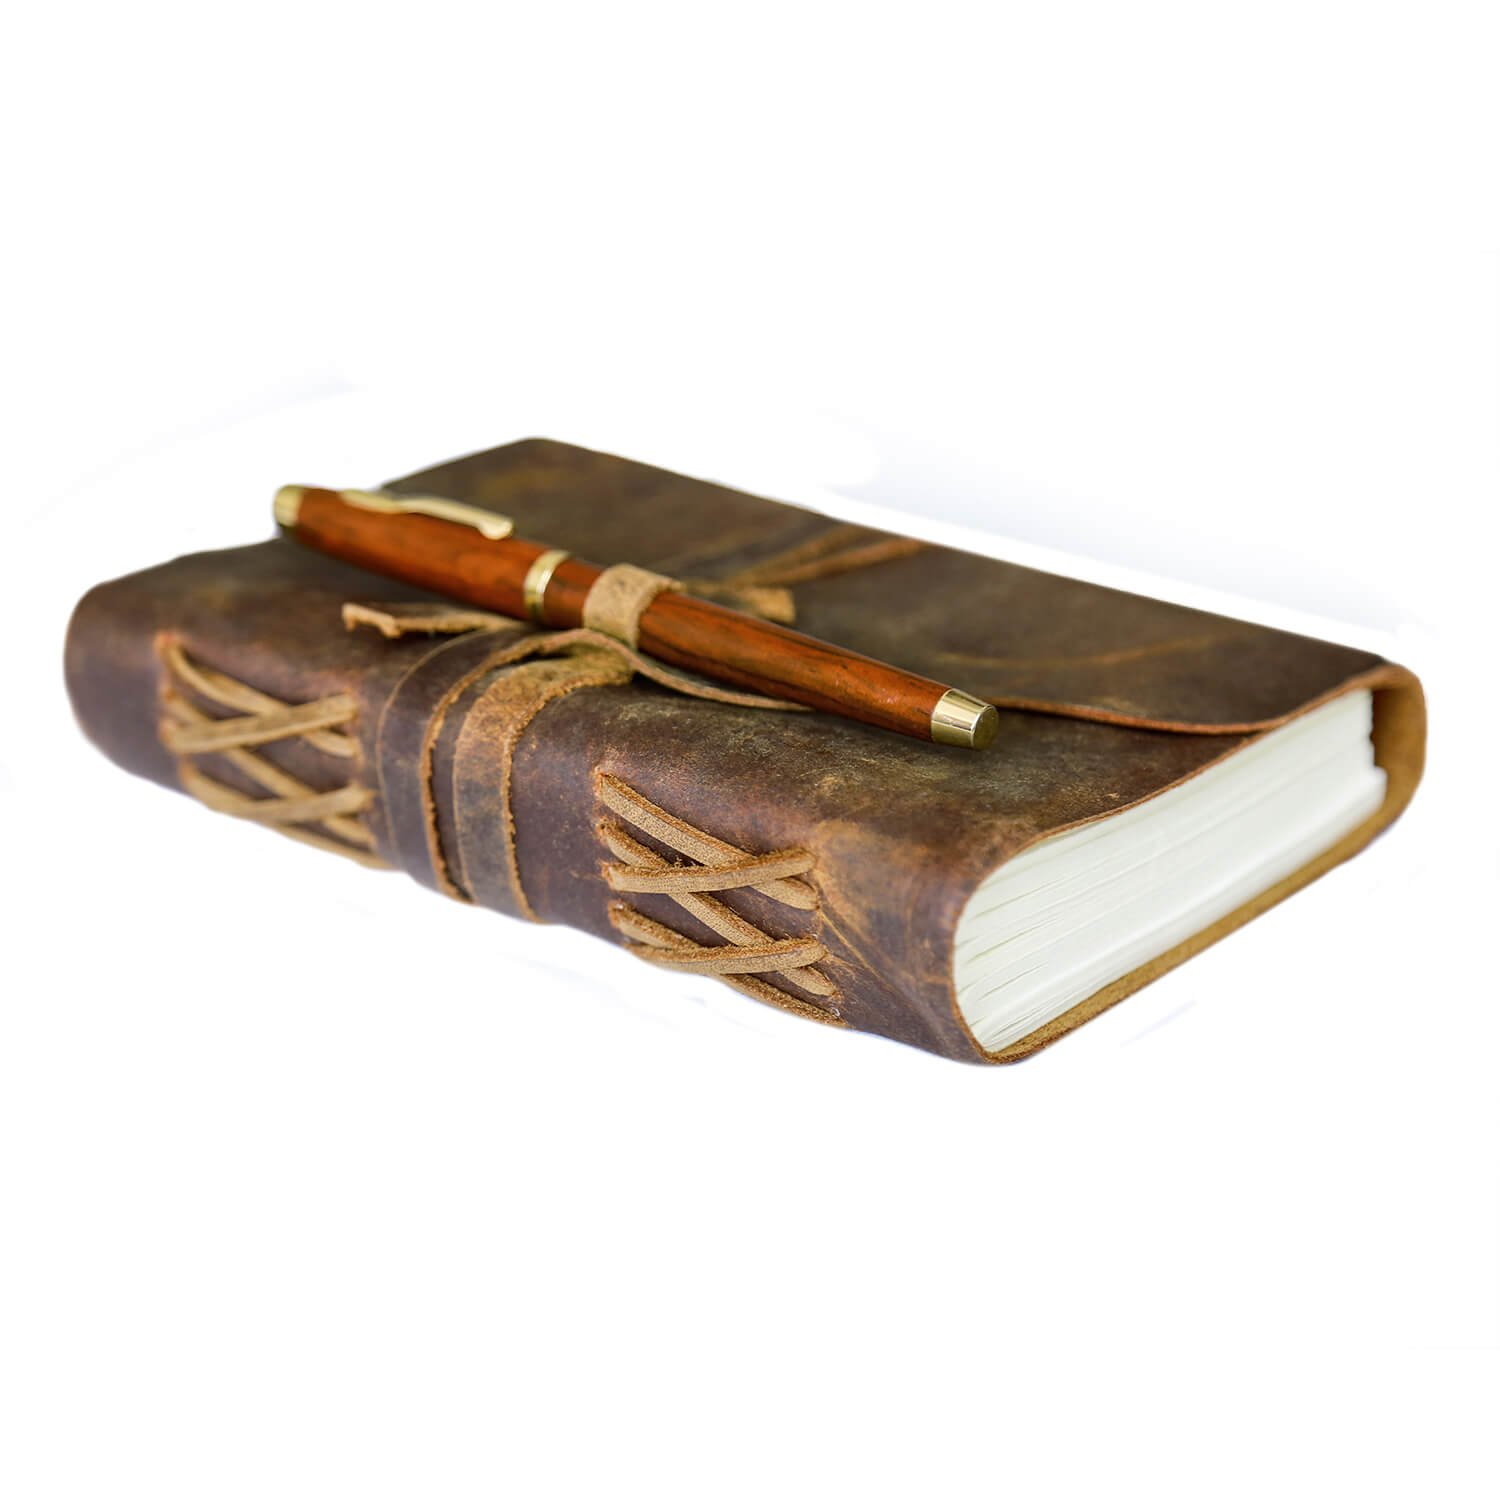 LEATHER JOURNAL WITH WOODEN PEN | PEN HOLDER | Vintage Writing Scrapbook | Handmade Leather Bound Diary | Notebook For Food & Exercise Planning, Sketches, Thoughts, Weight Watchers